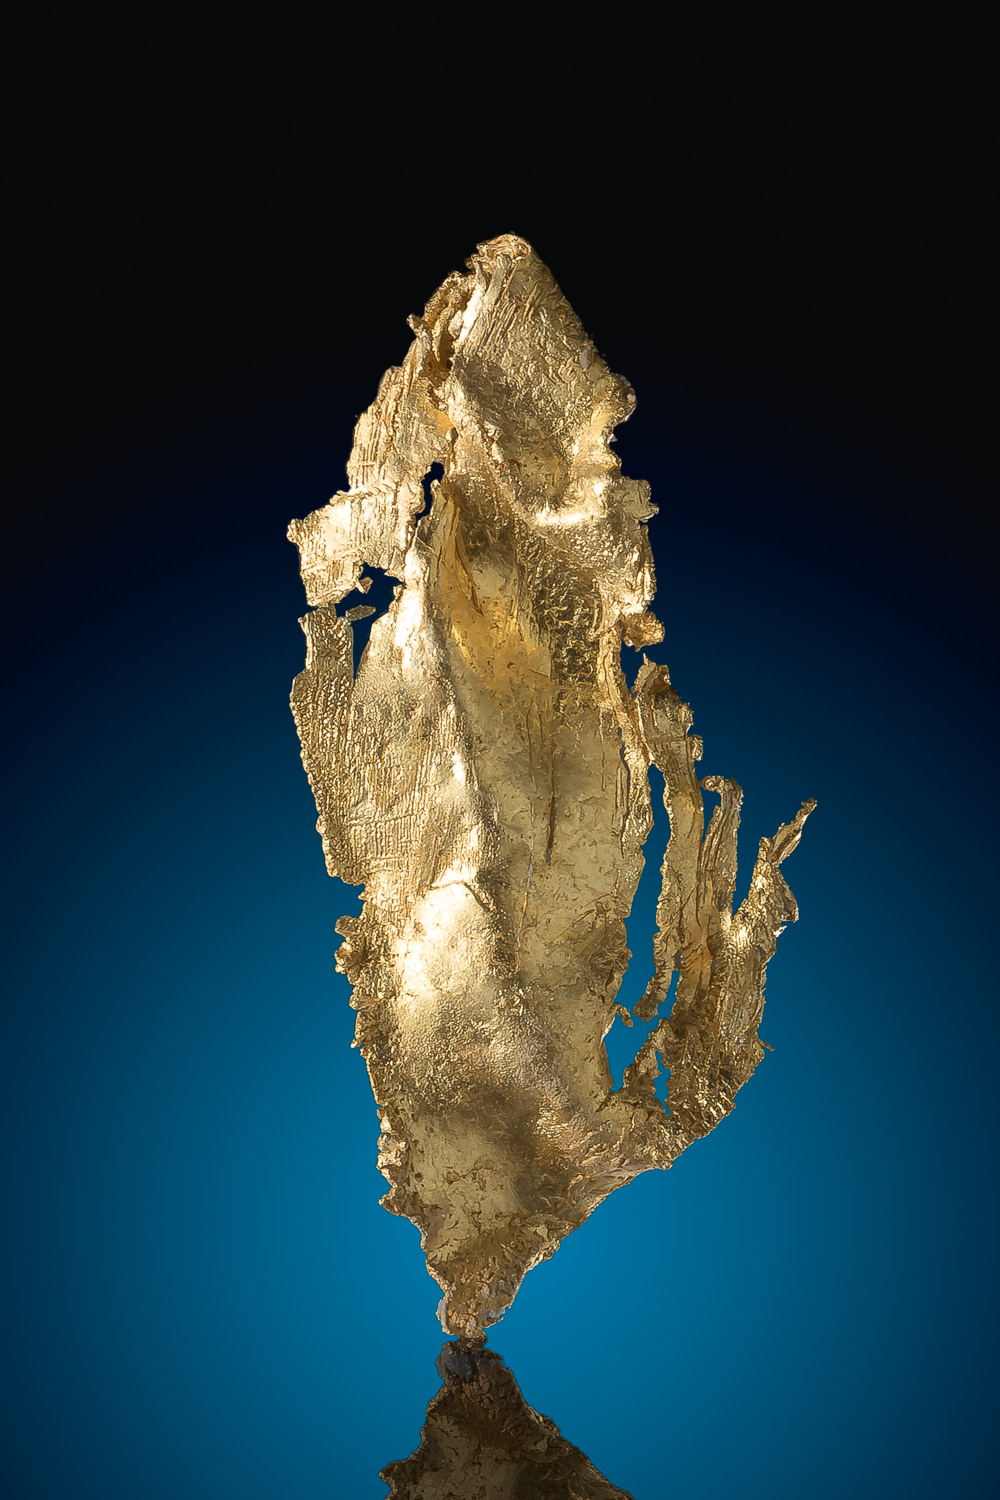 Intricate Buttery Gold - Leaf Gold Crystal Specimen